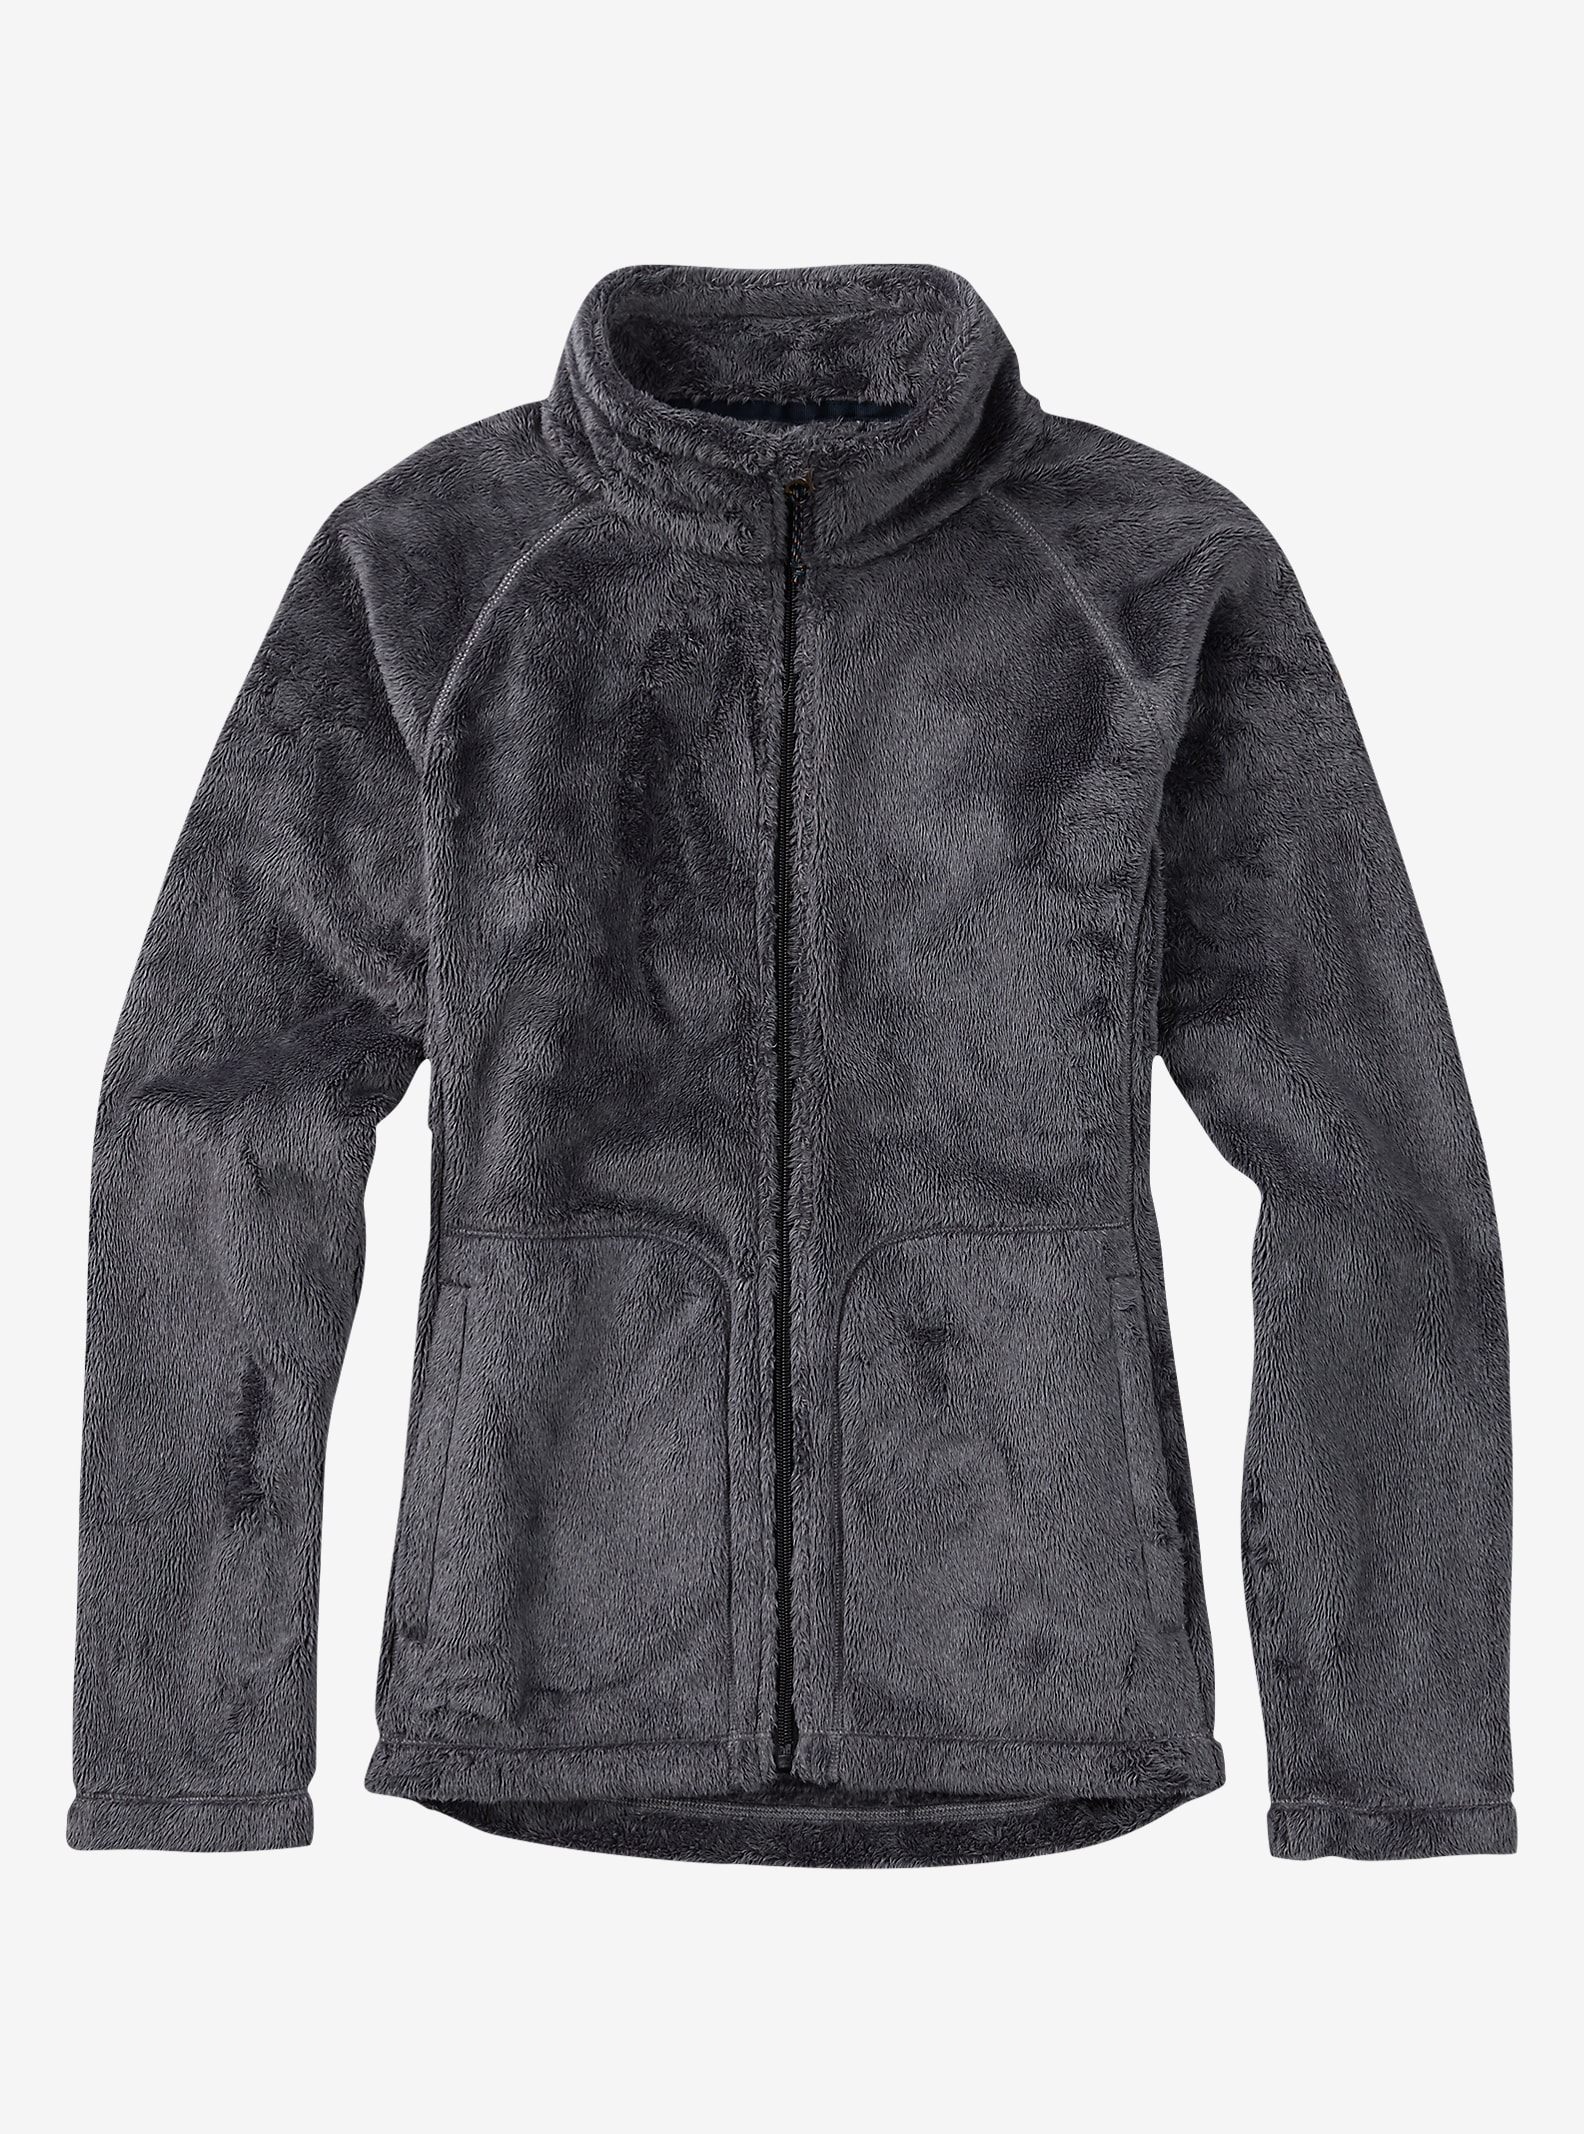 Burton Mira Full-Zip Fleece shown in True Black